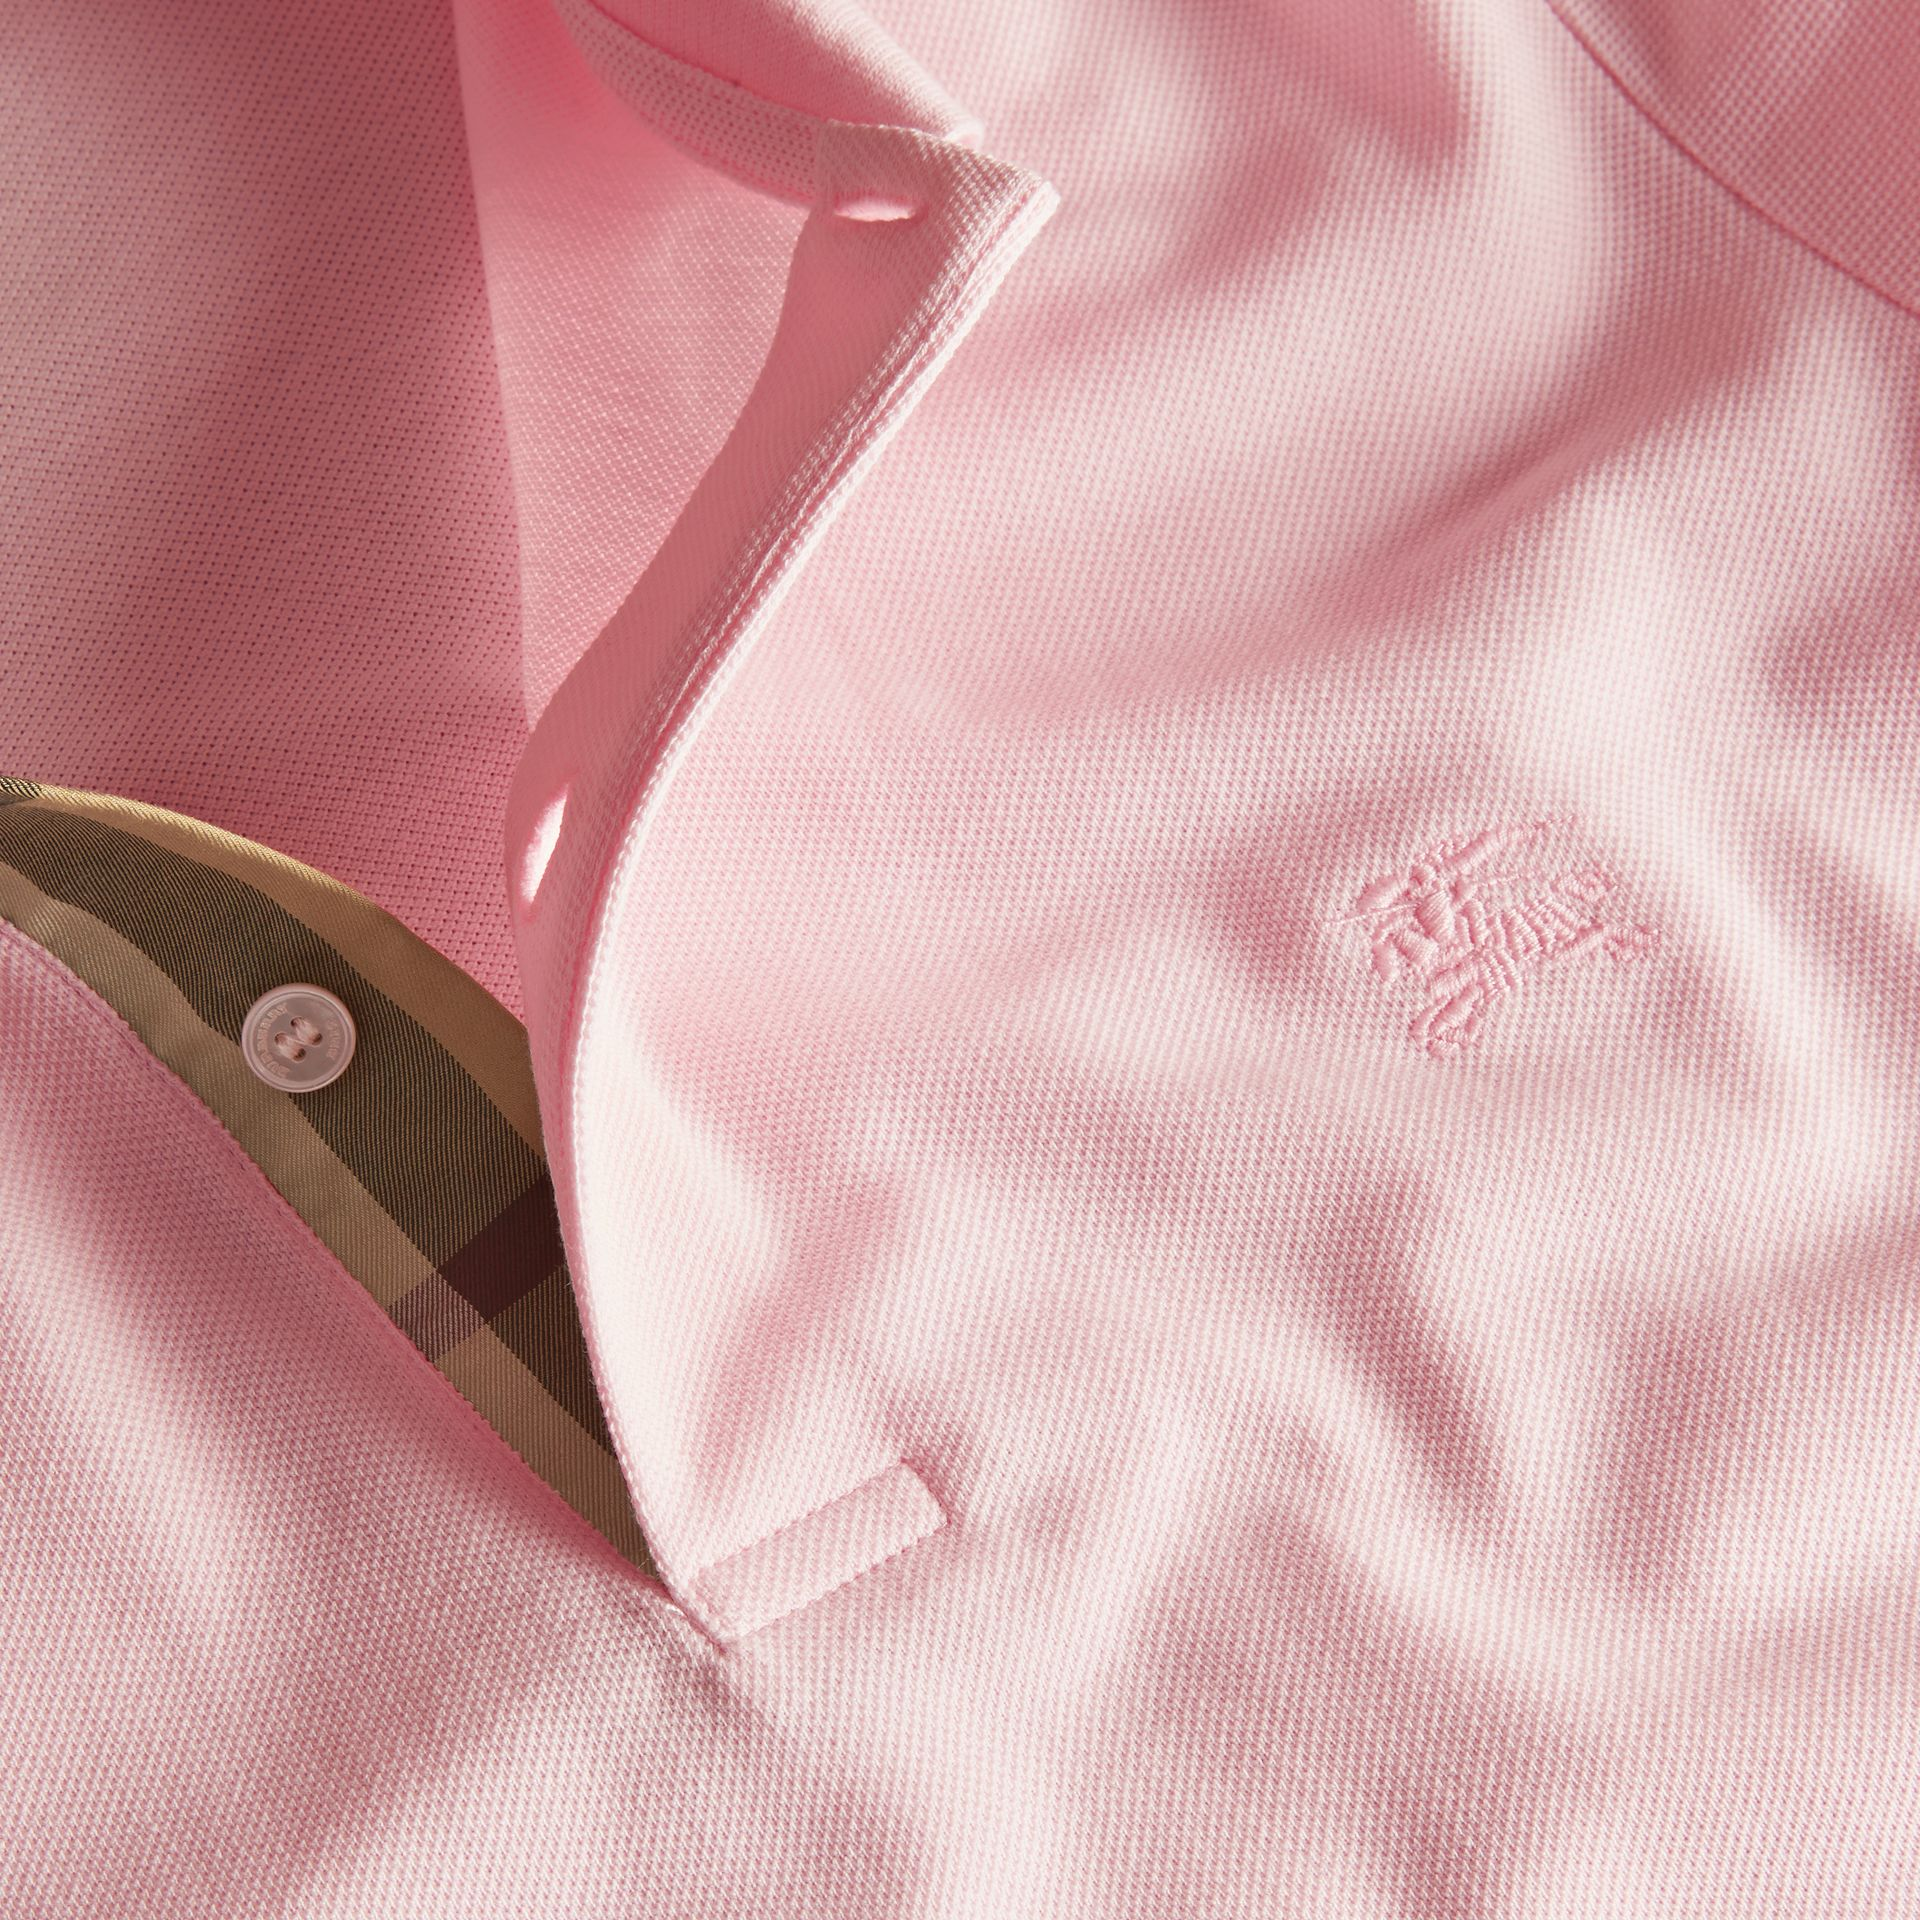 City pink Check Placket Cotton Piqué Polo Shirt City Pink - gallery image 2